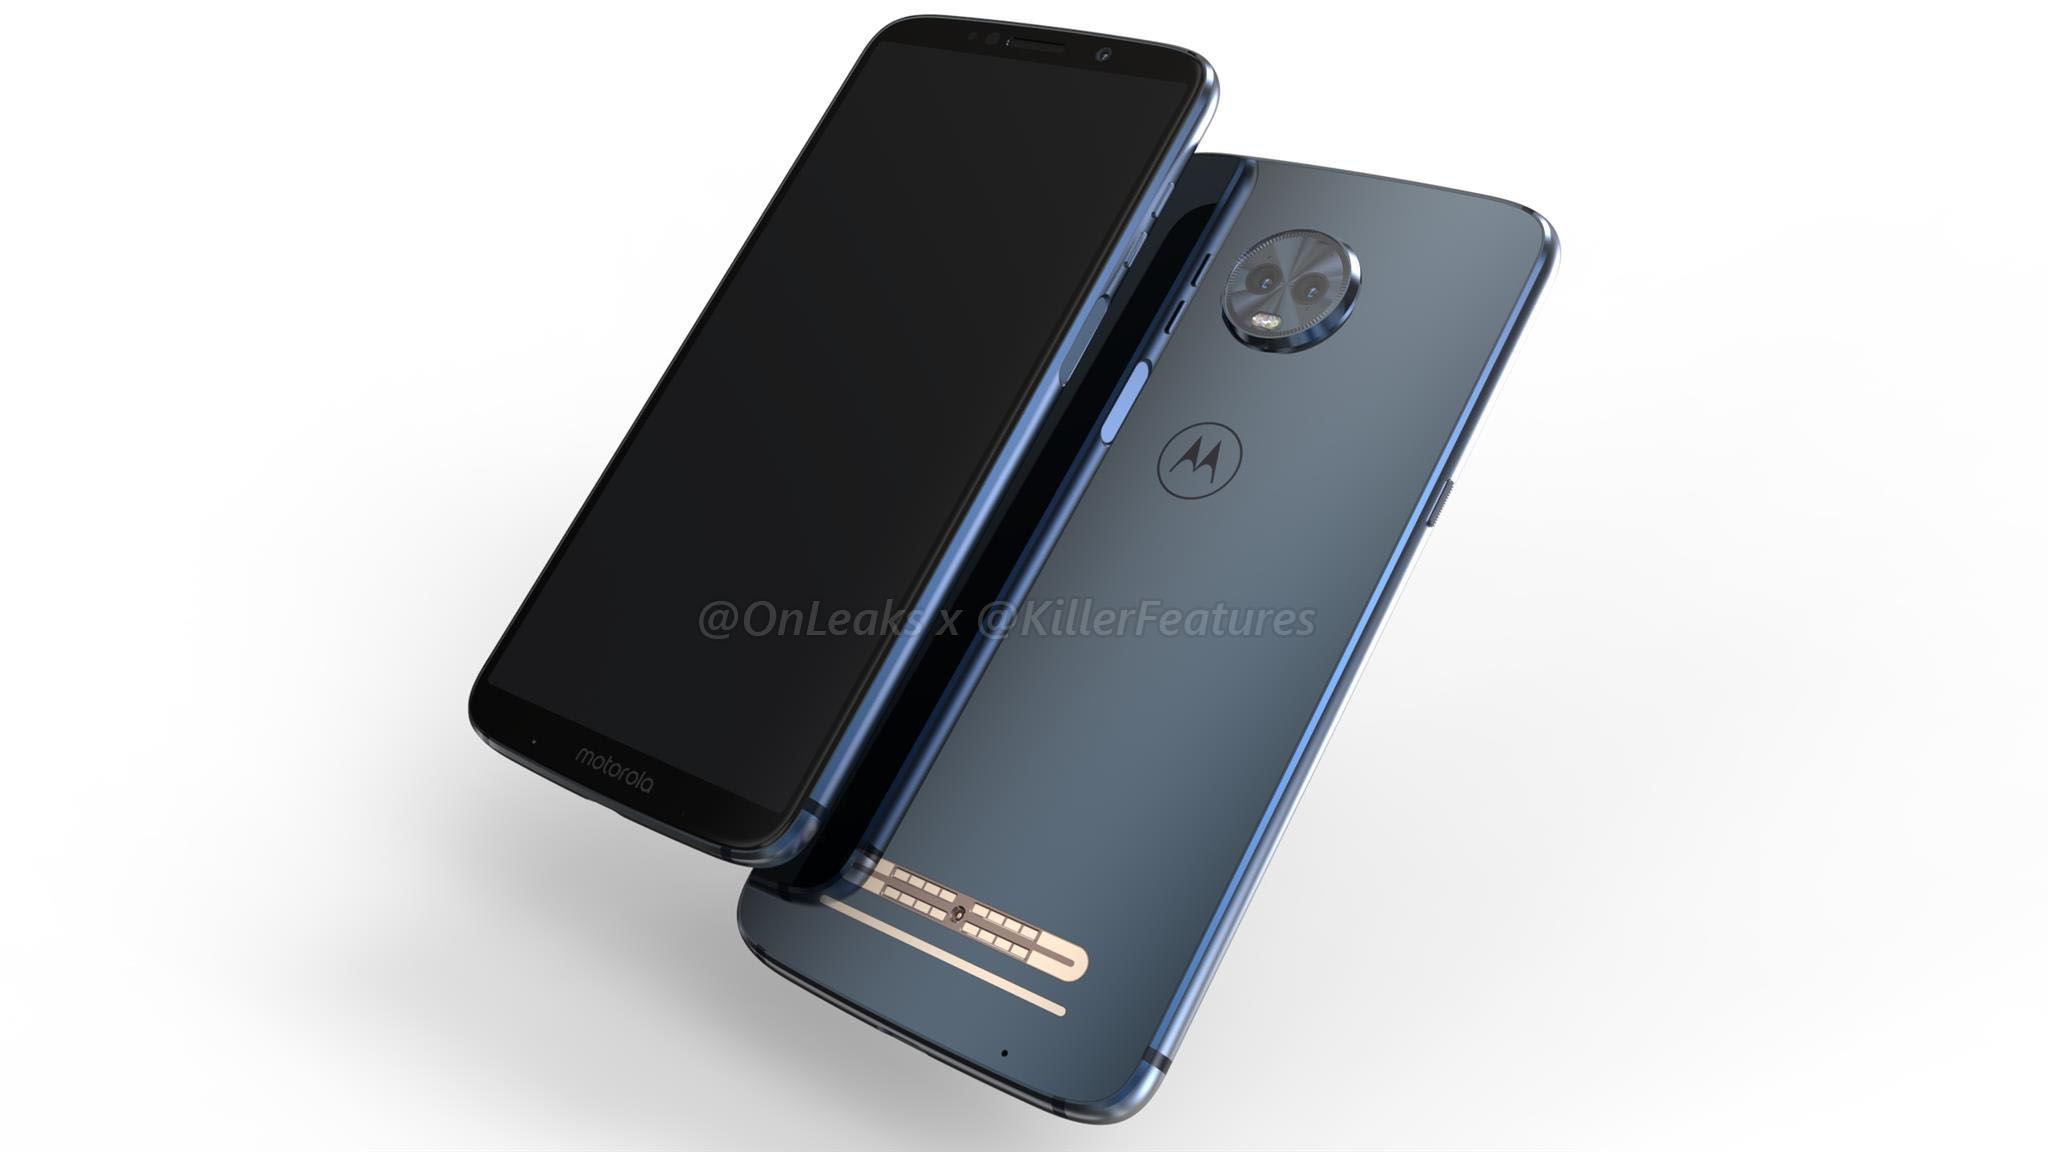 Moto Z3 Play render via OnLeaks